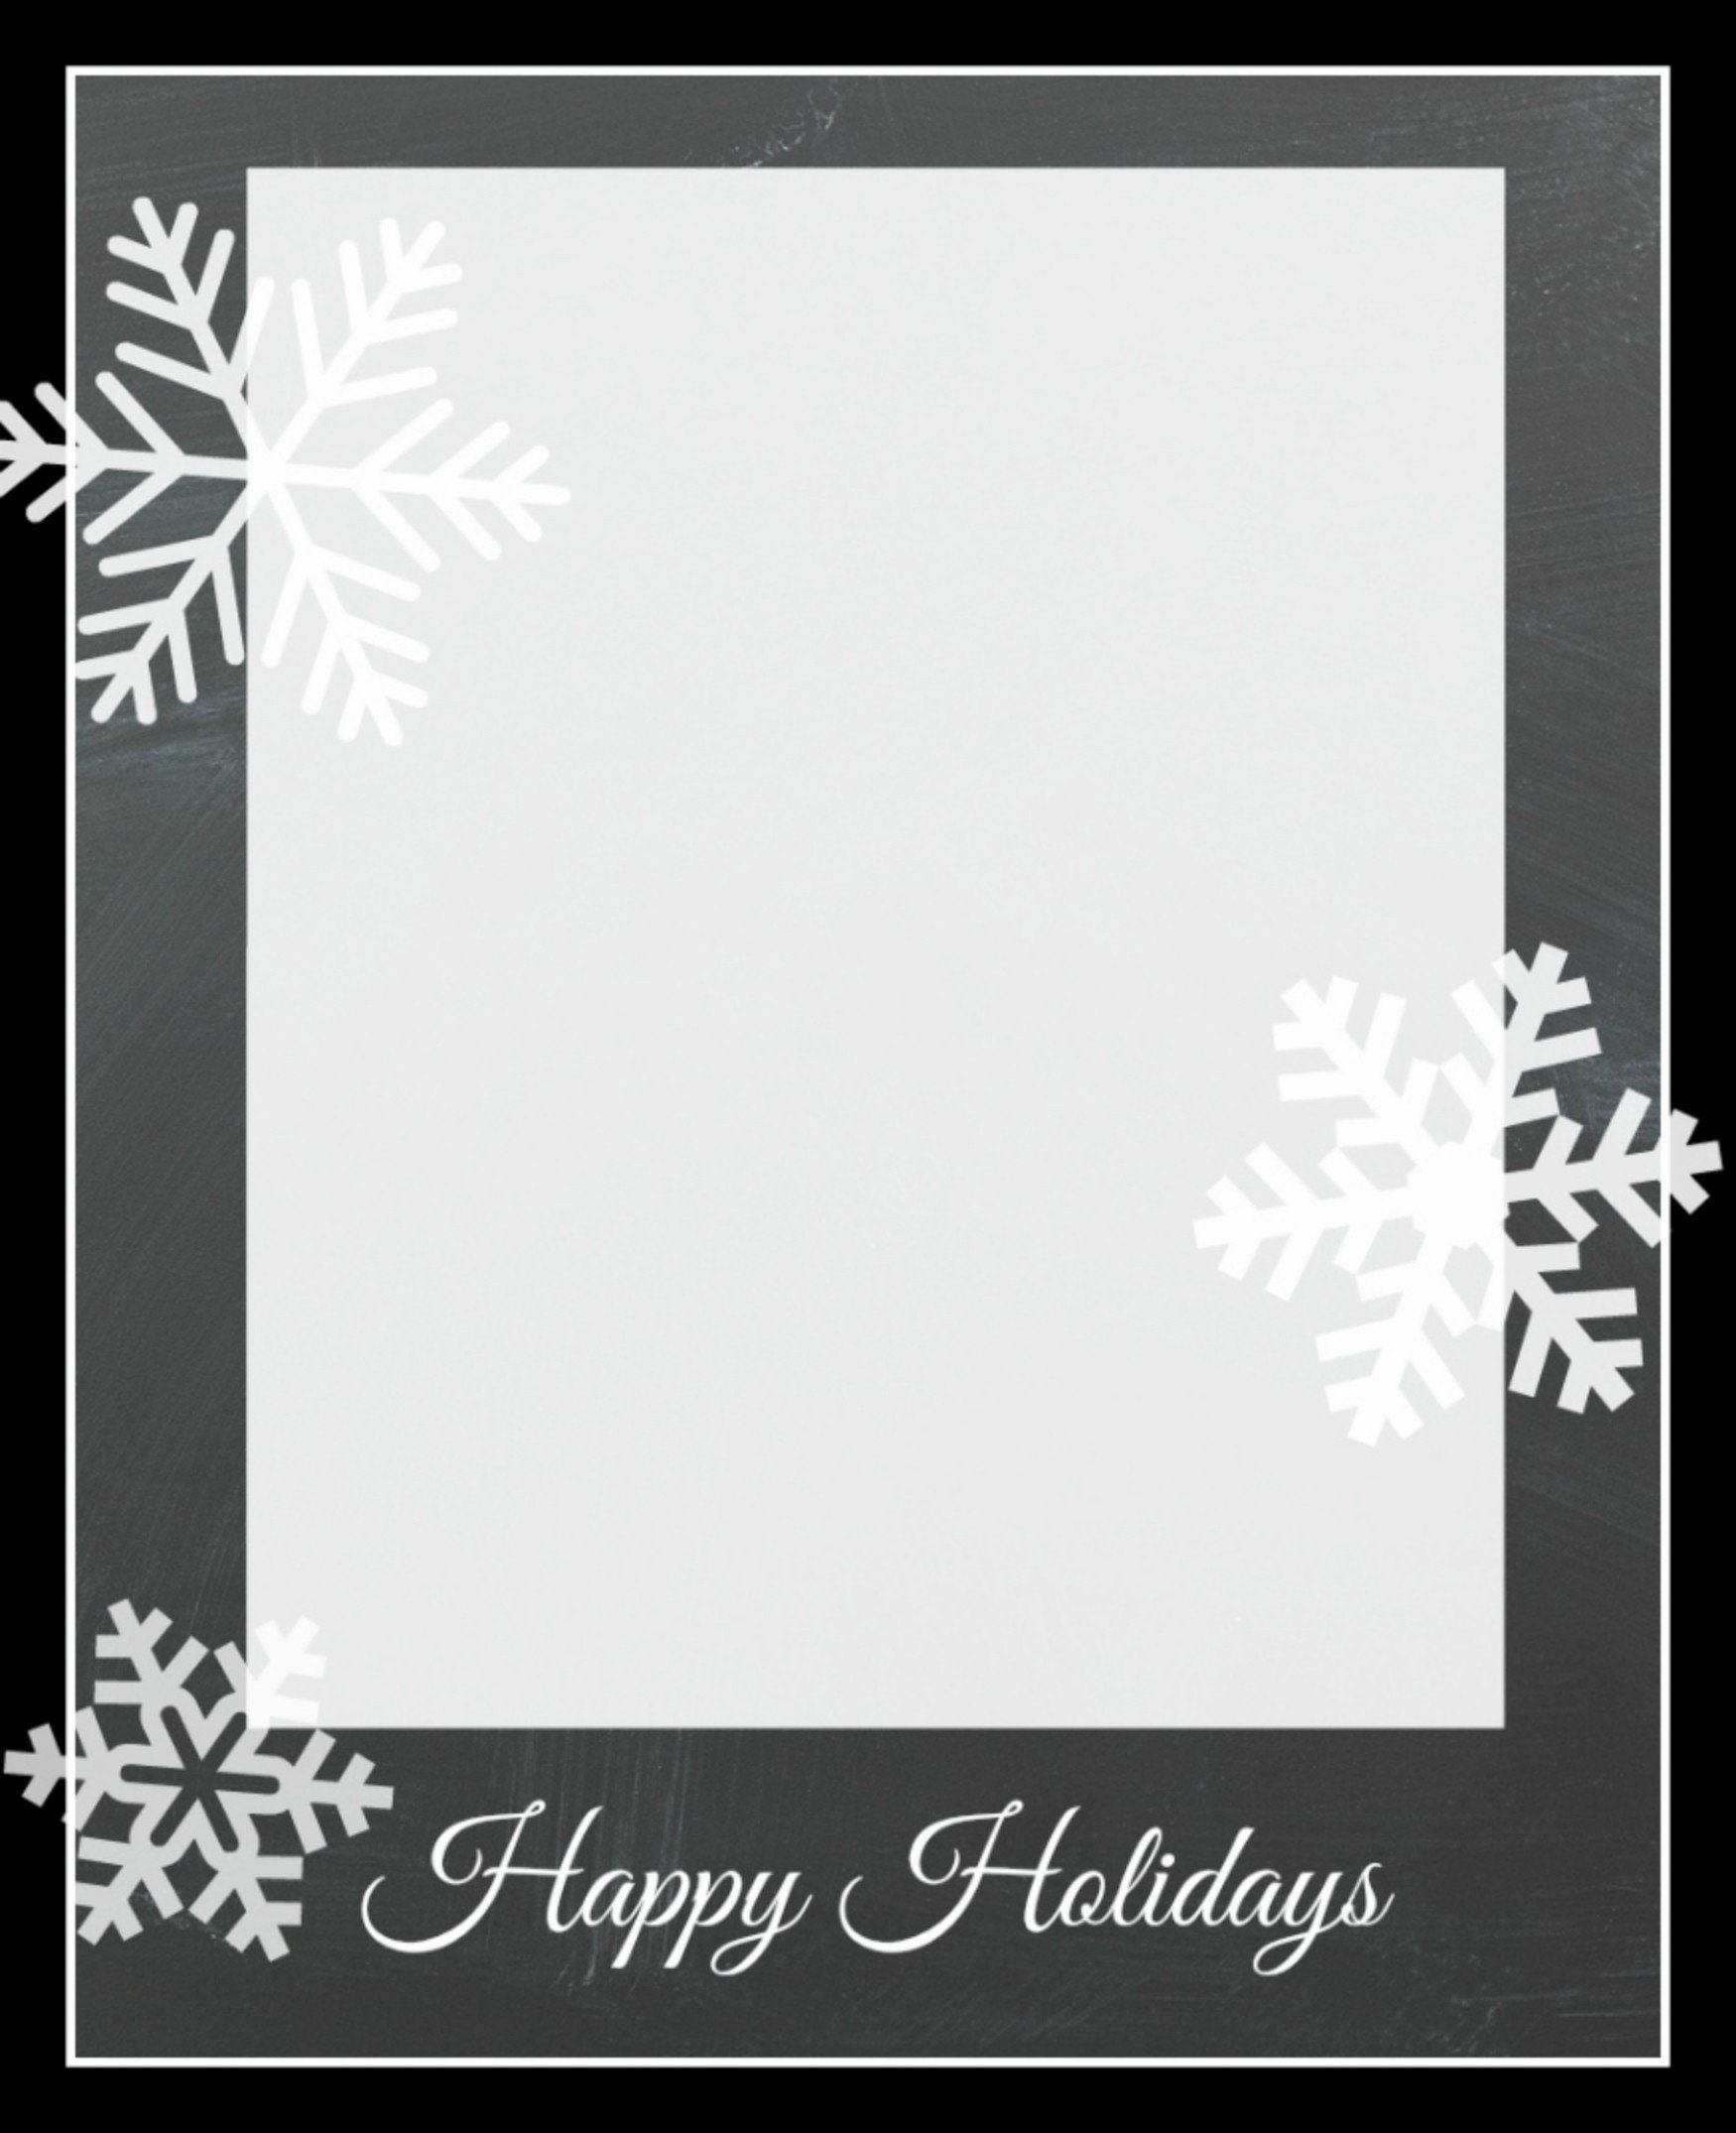 4x6 Christmas Card Templates Best Of Happy Holidays Card Template Kabapfinedt Christmas Photo Card Template Christmas Card Template Free Holiday Card Templates